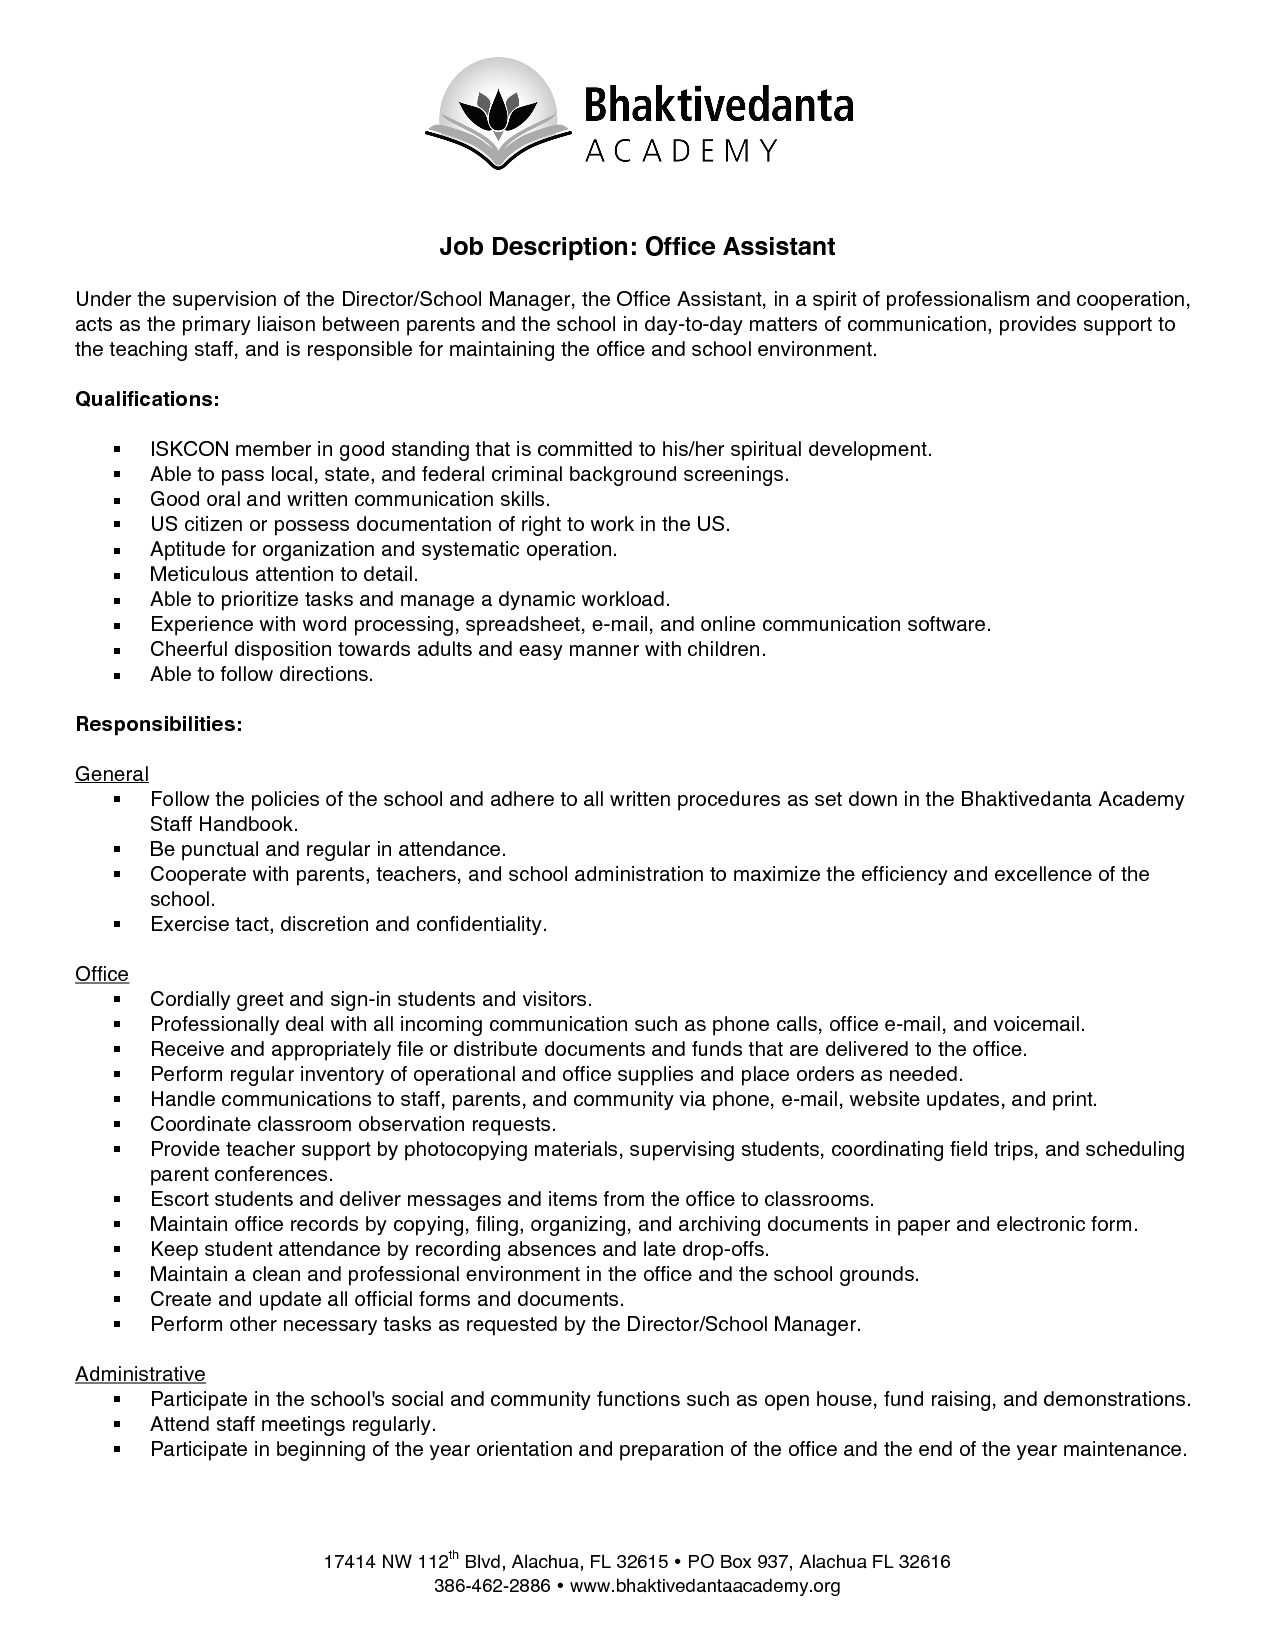 Office assistant job description resume 2016 - Executive office administrator job description ...